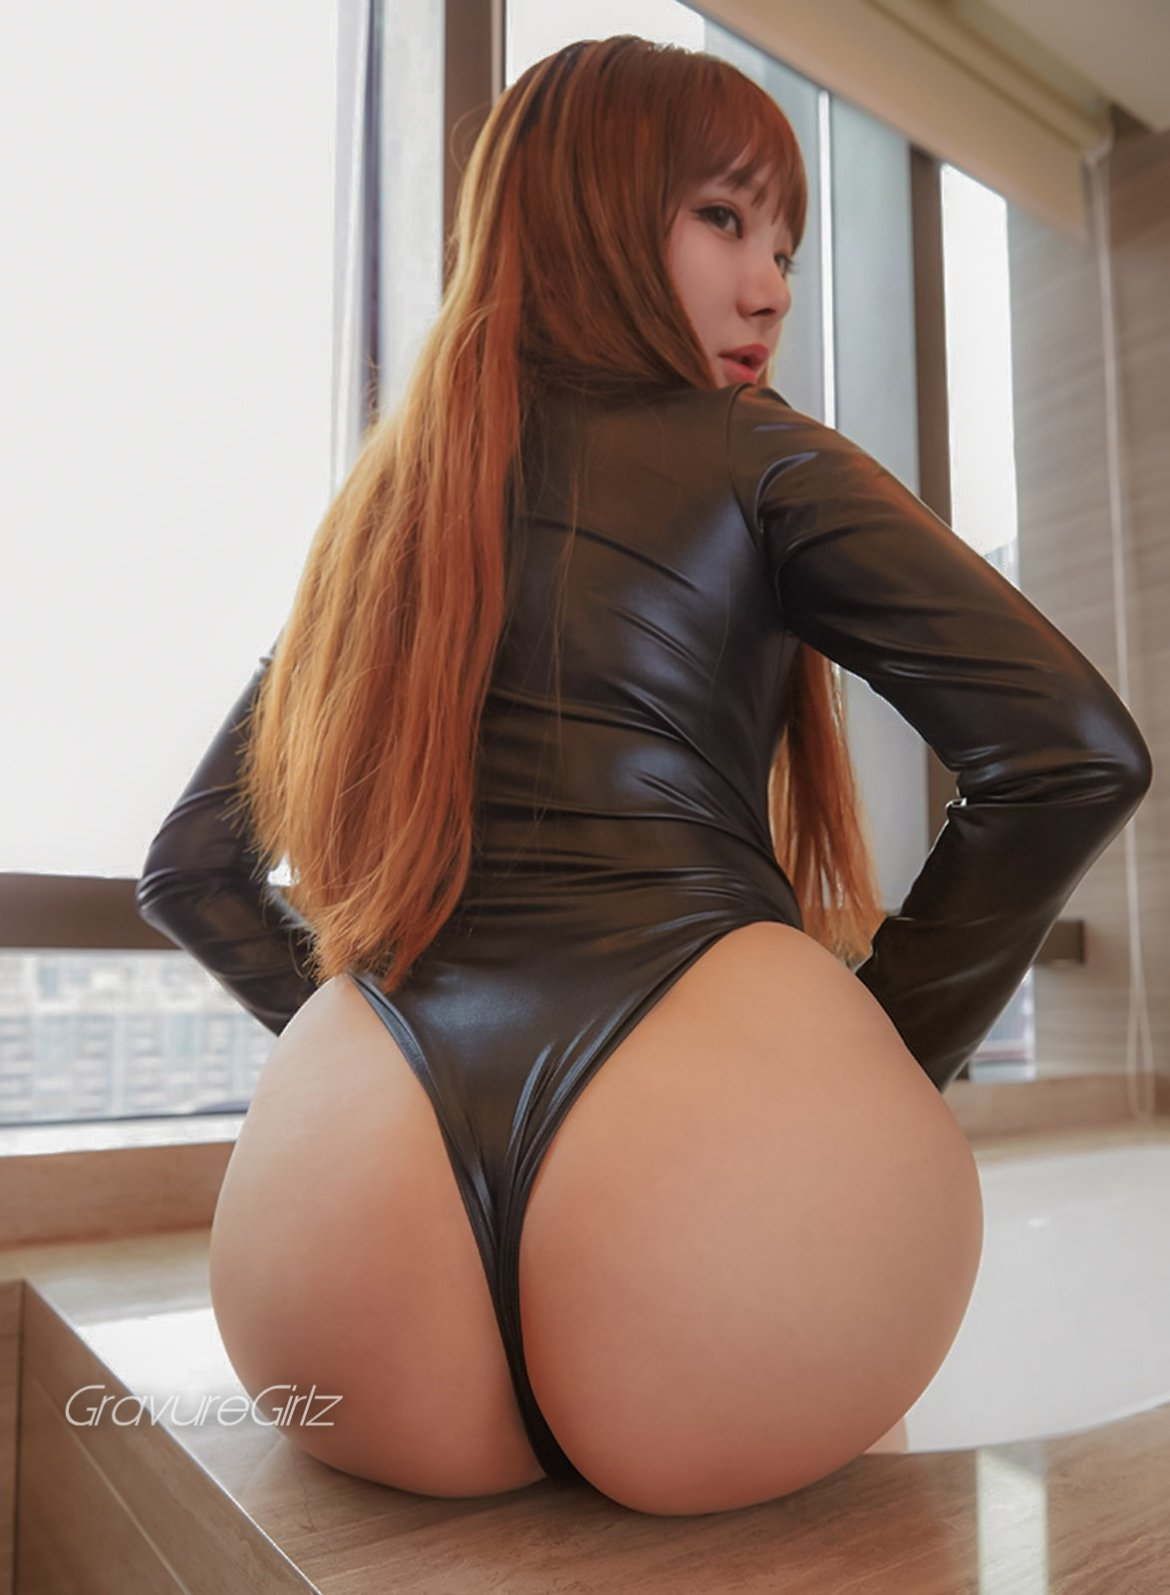 Ai yumemi on her knees in white stockings 1